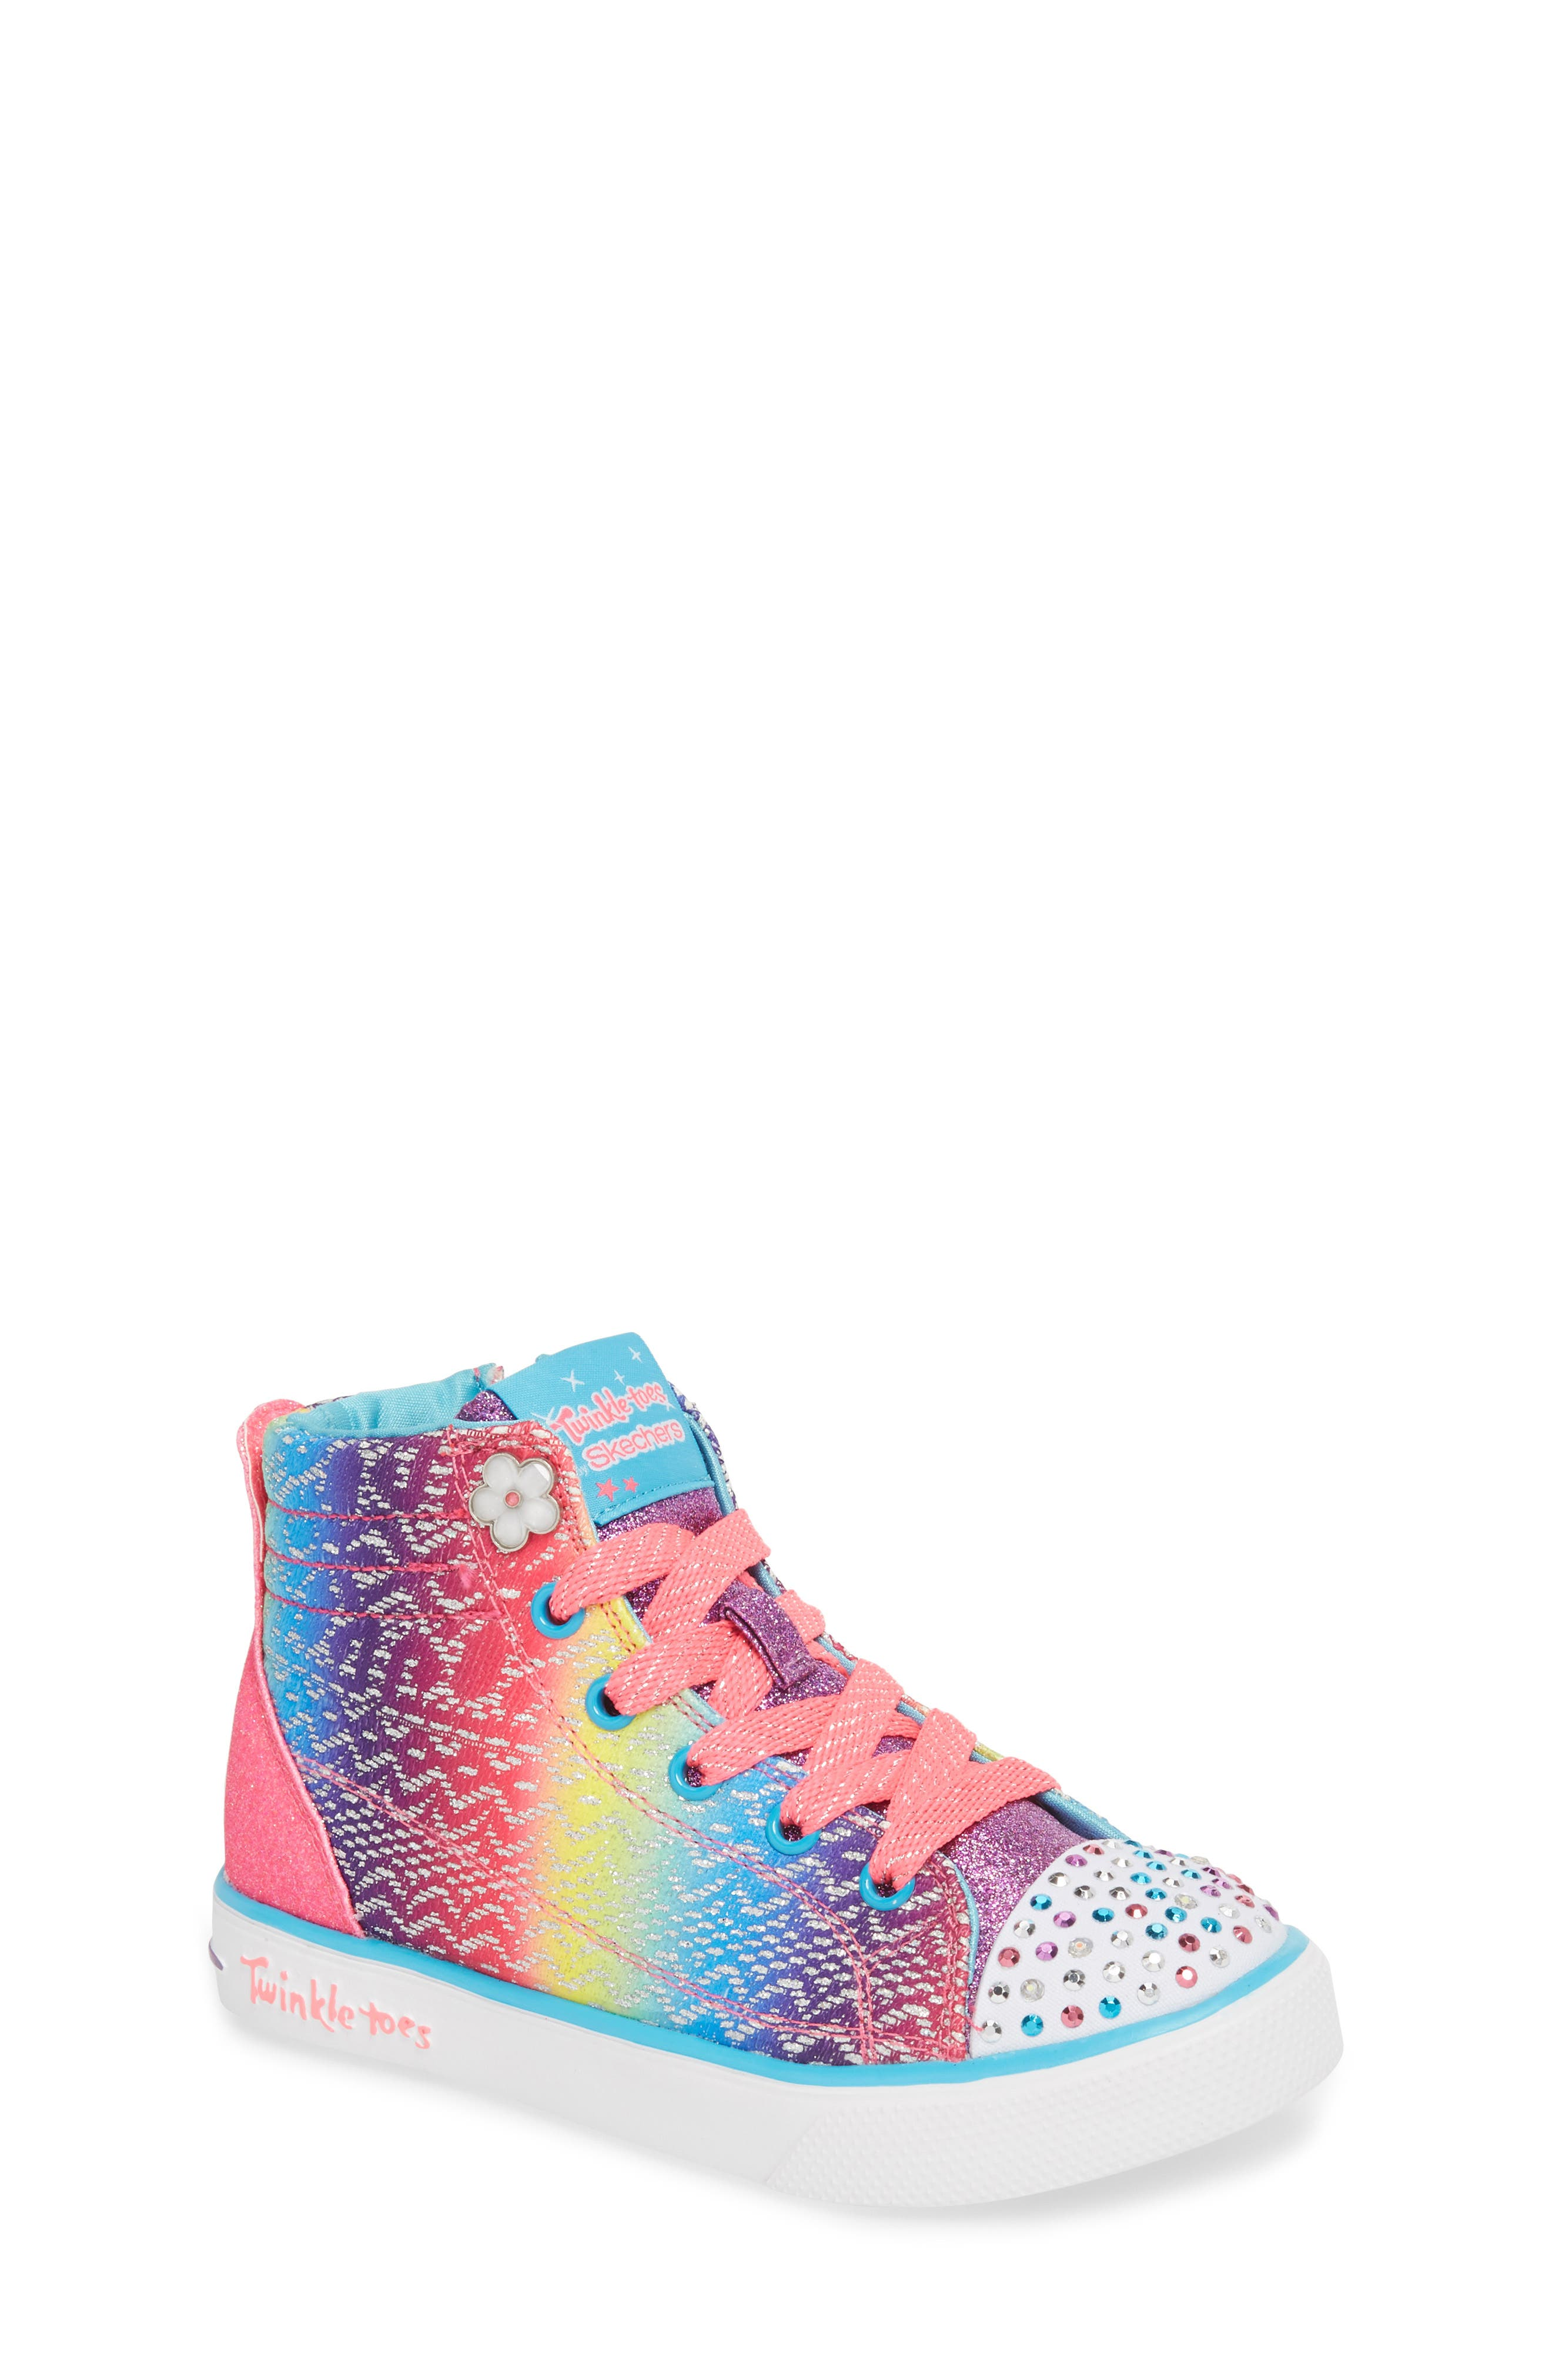 Twinkle Toes Breeze 2.0 Light-Up High Top Sneaker,                         Main,                         color, 484